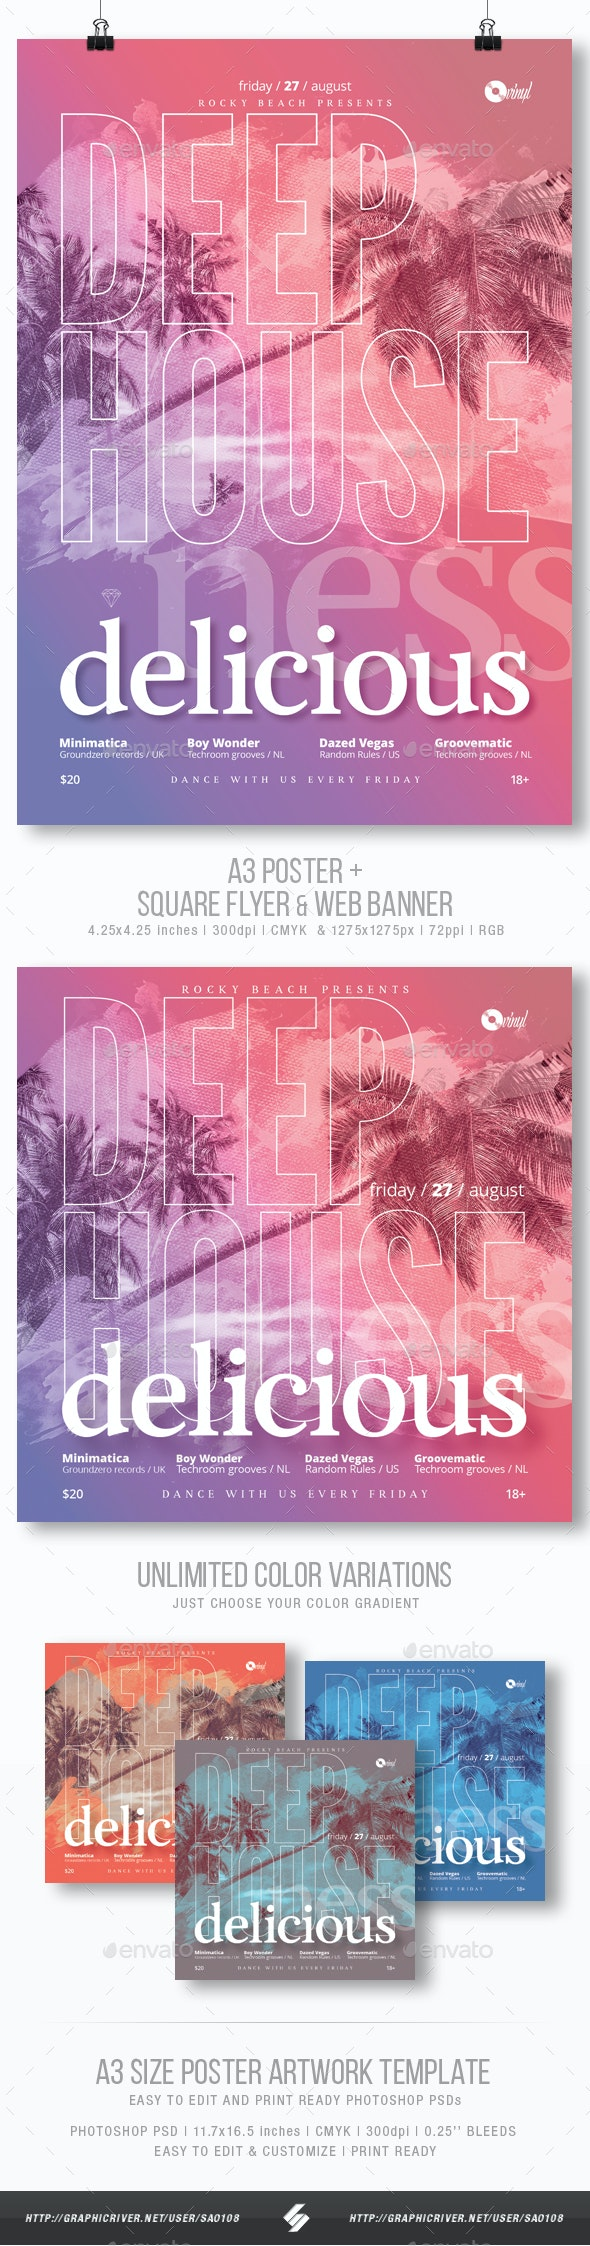 Deep House Delicious - Summer Party Flyer / Poster Template A3 - Clubs & Parties Events